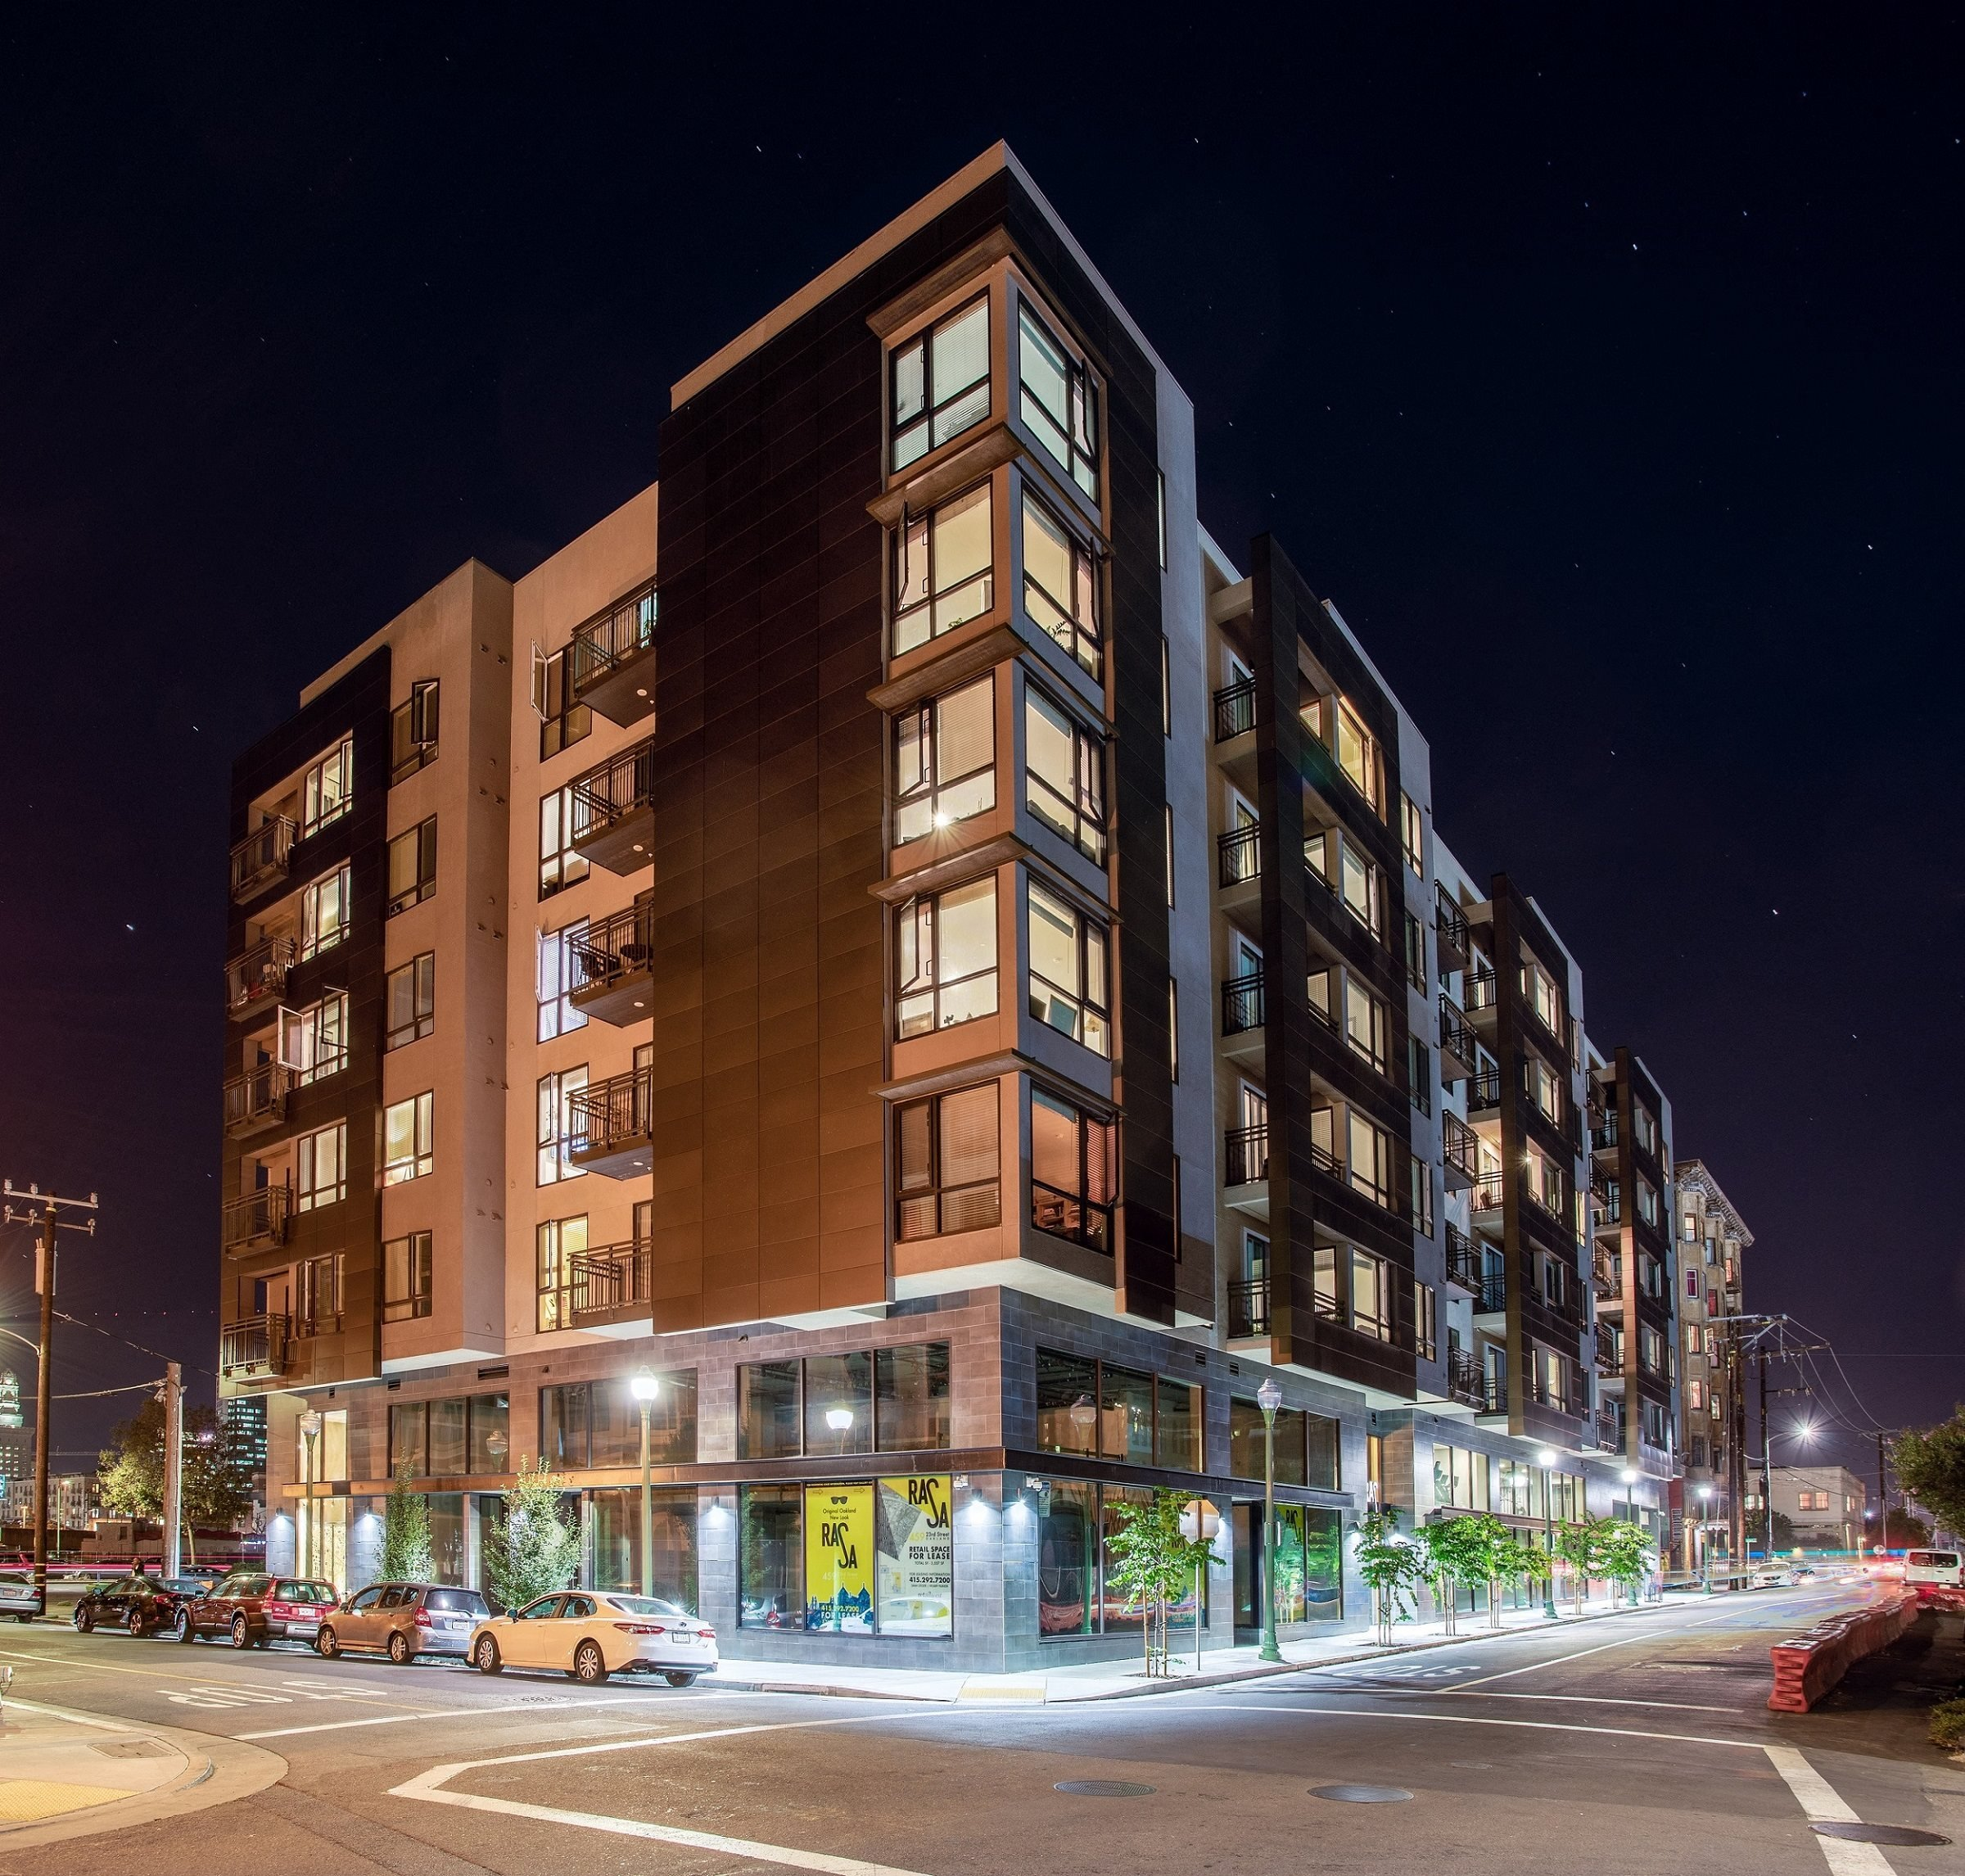 Luxury Apartments in Oakland CA - Exterior View of the Apartment Building at Night Showcasing Expansive Community